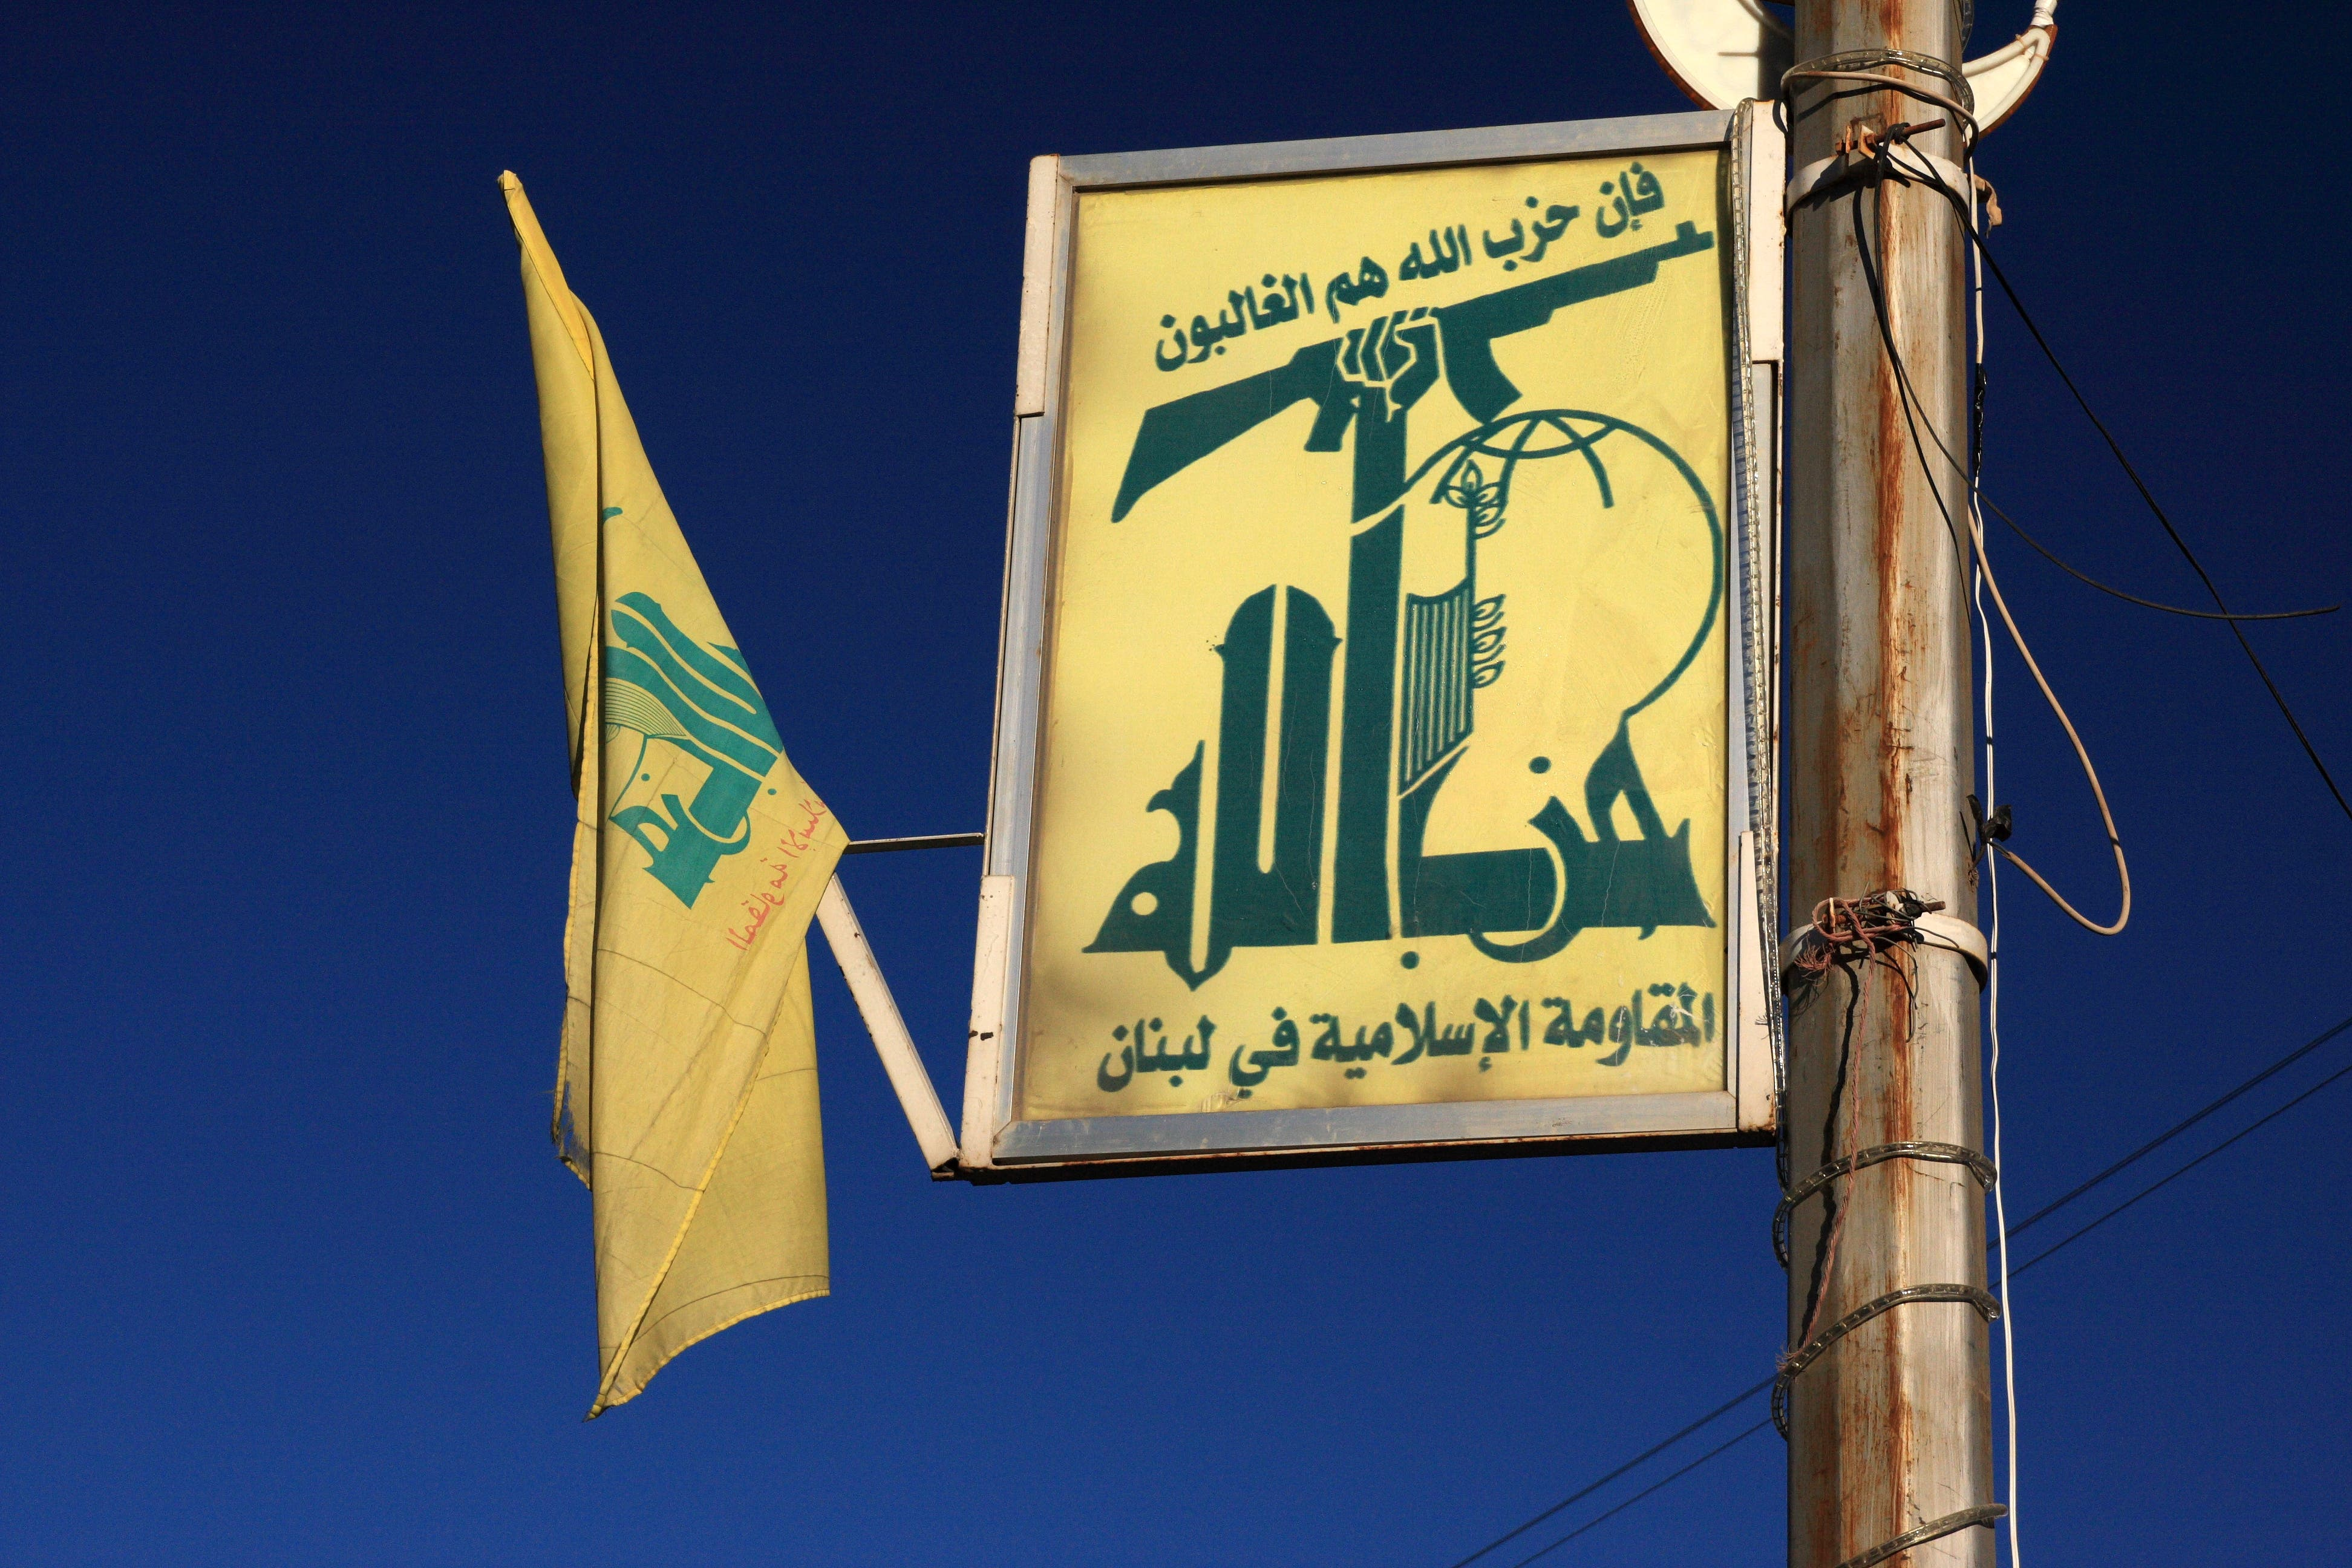 The Hezbollah flag is seen in the suburbs of Beirut. (AFP/File)